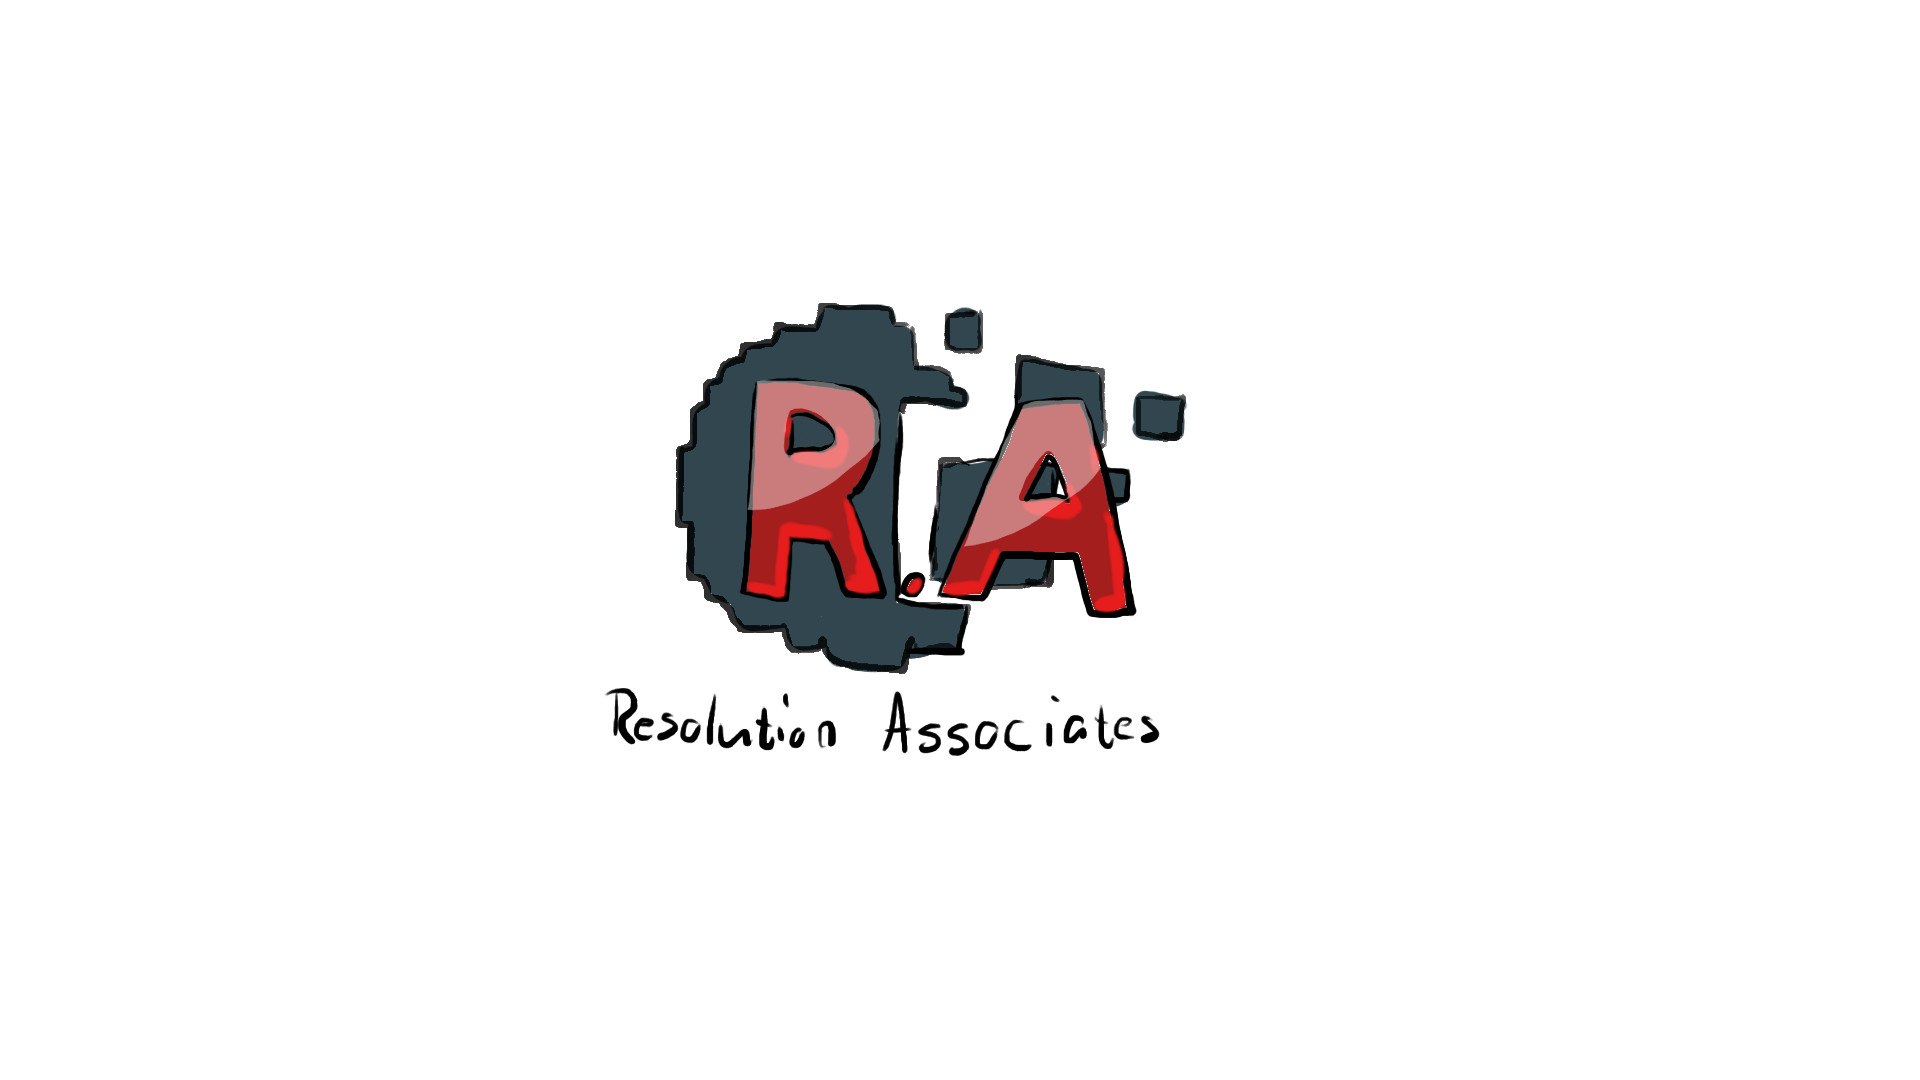 Resolution Associates